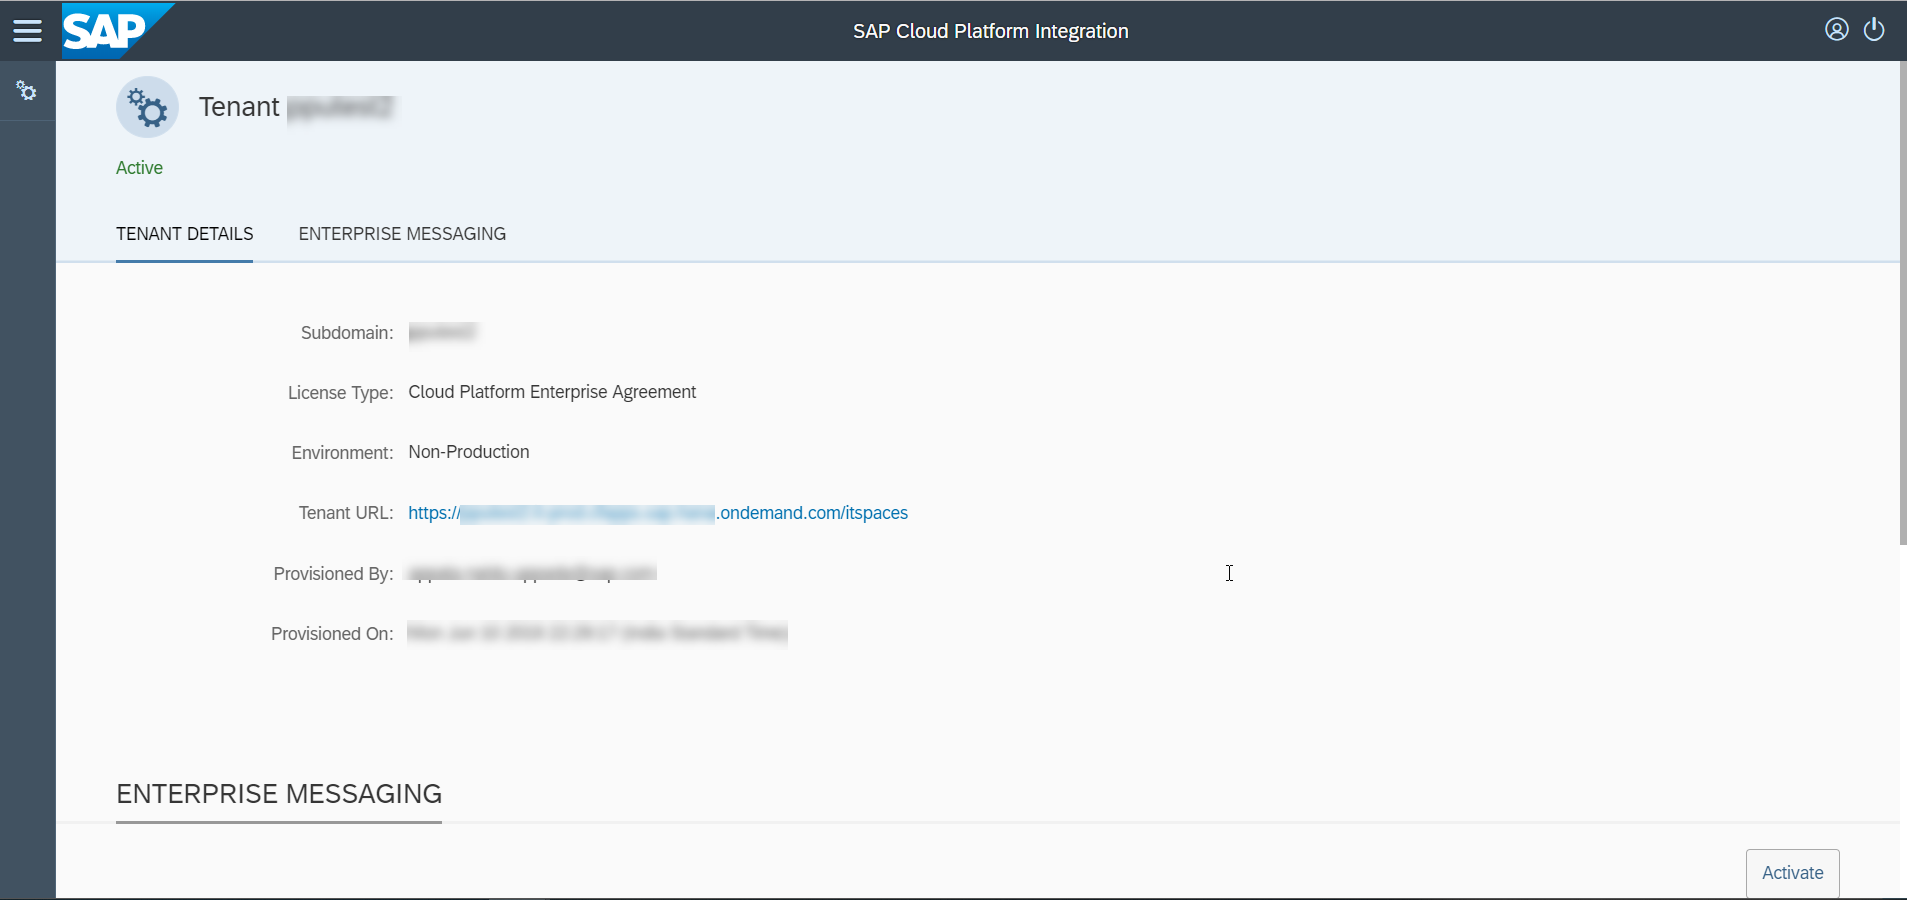 Self-Service Enablement of Cloud Integration Service on